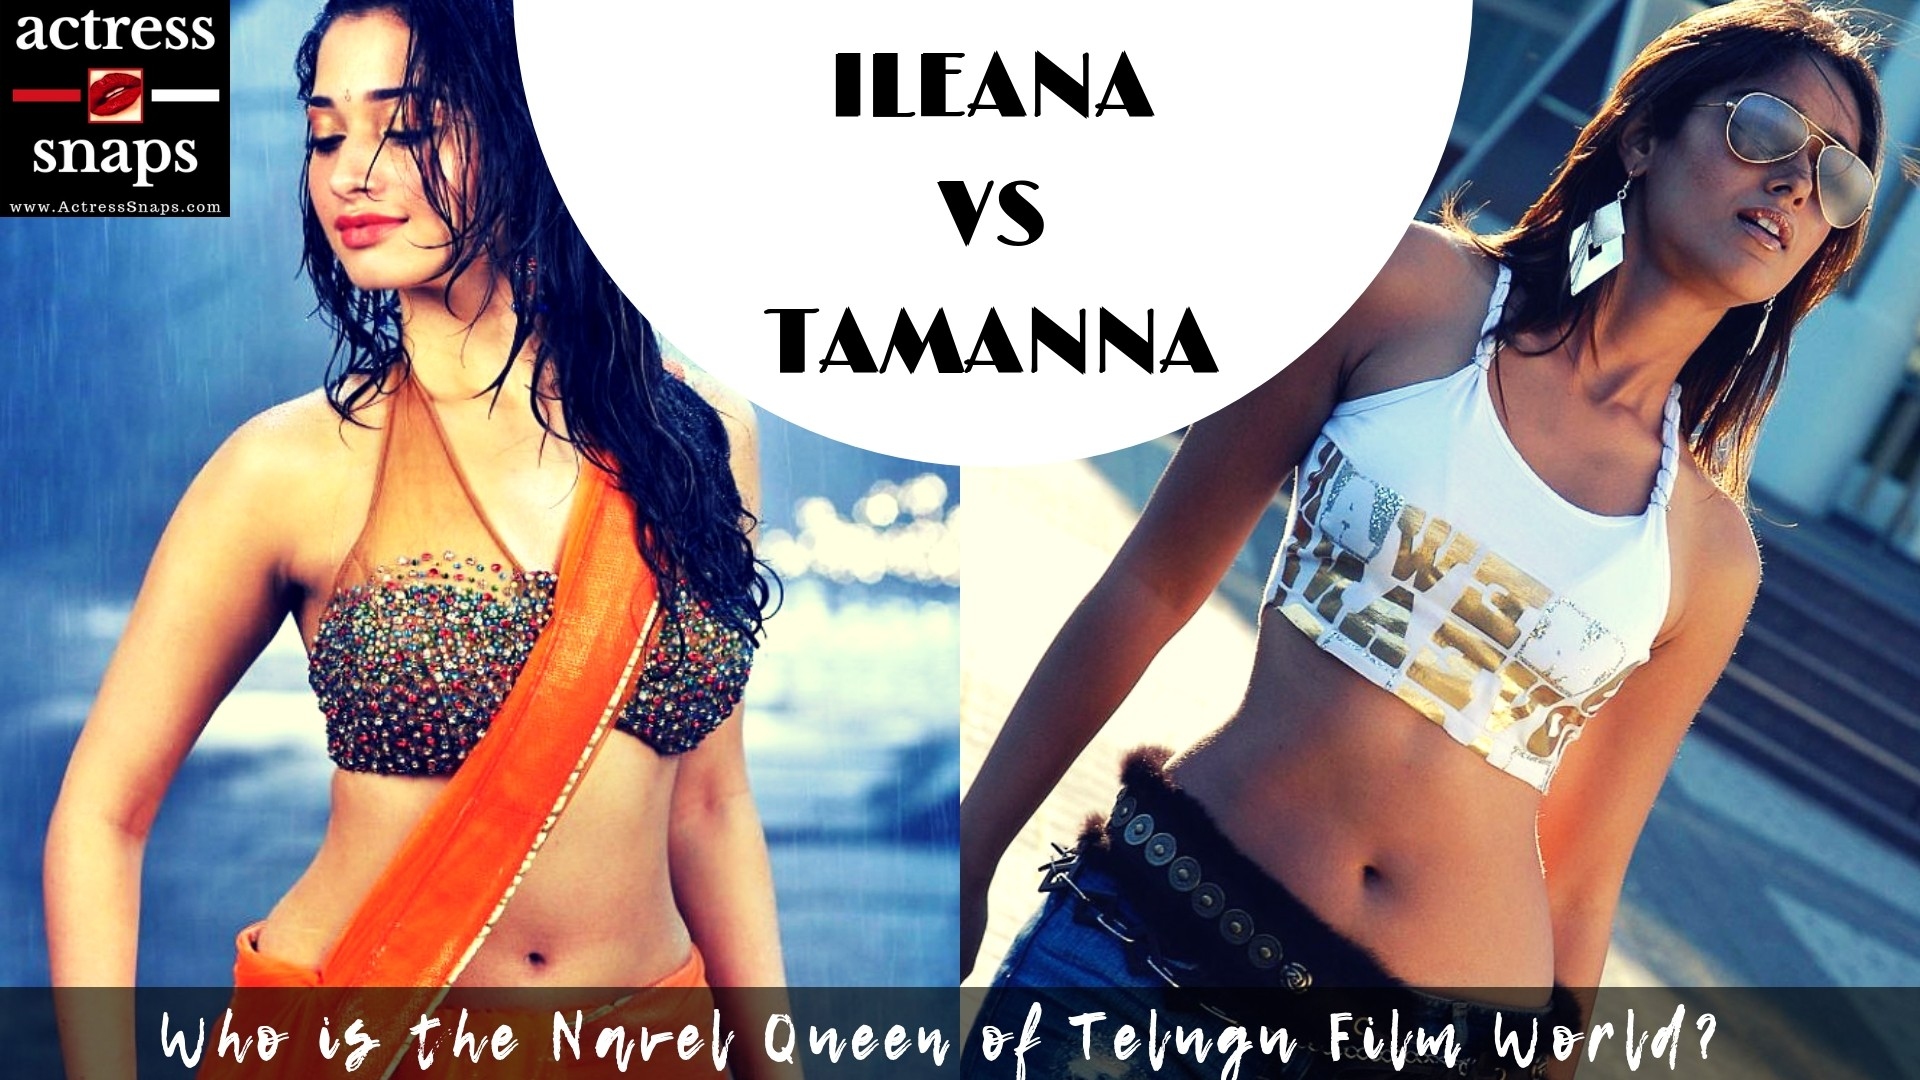 Who is the Real Navel Queen in Telugu Film World - Tamanna or Ileana